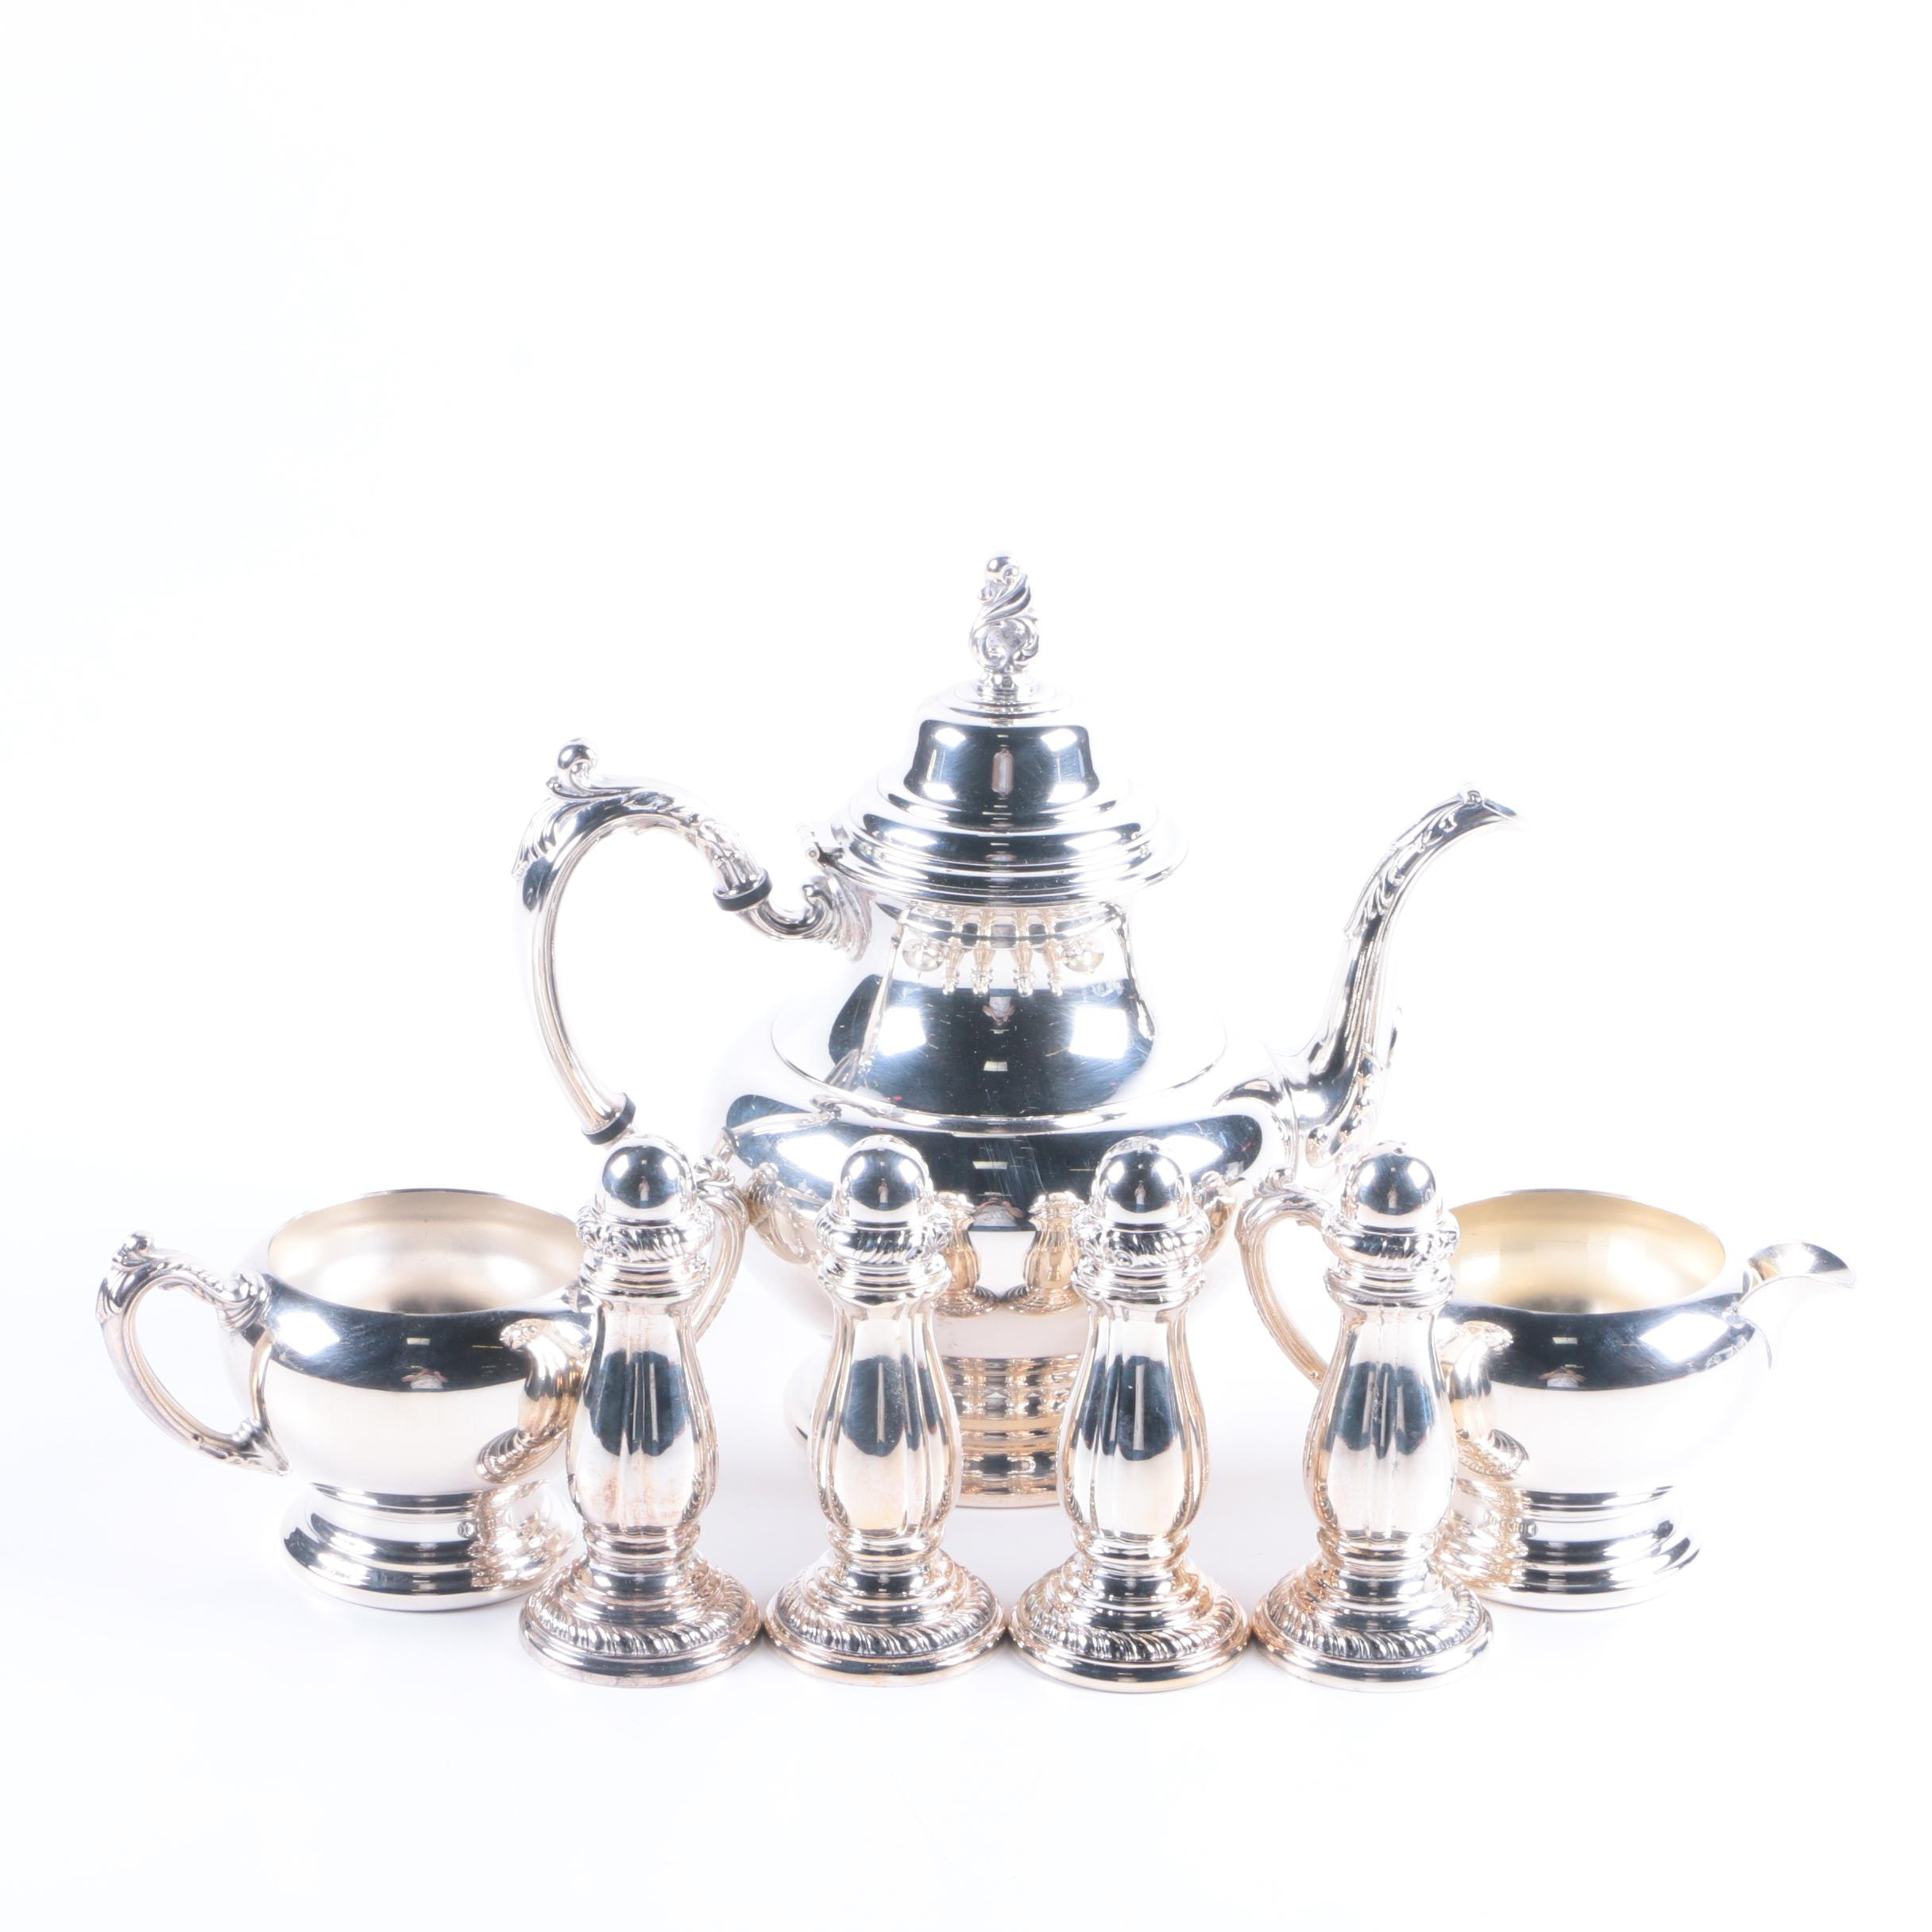 Oneida Silver Plate Tea Service with Neiman Marcus Footed Shakers